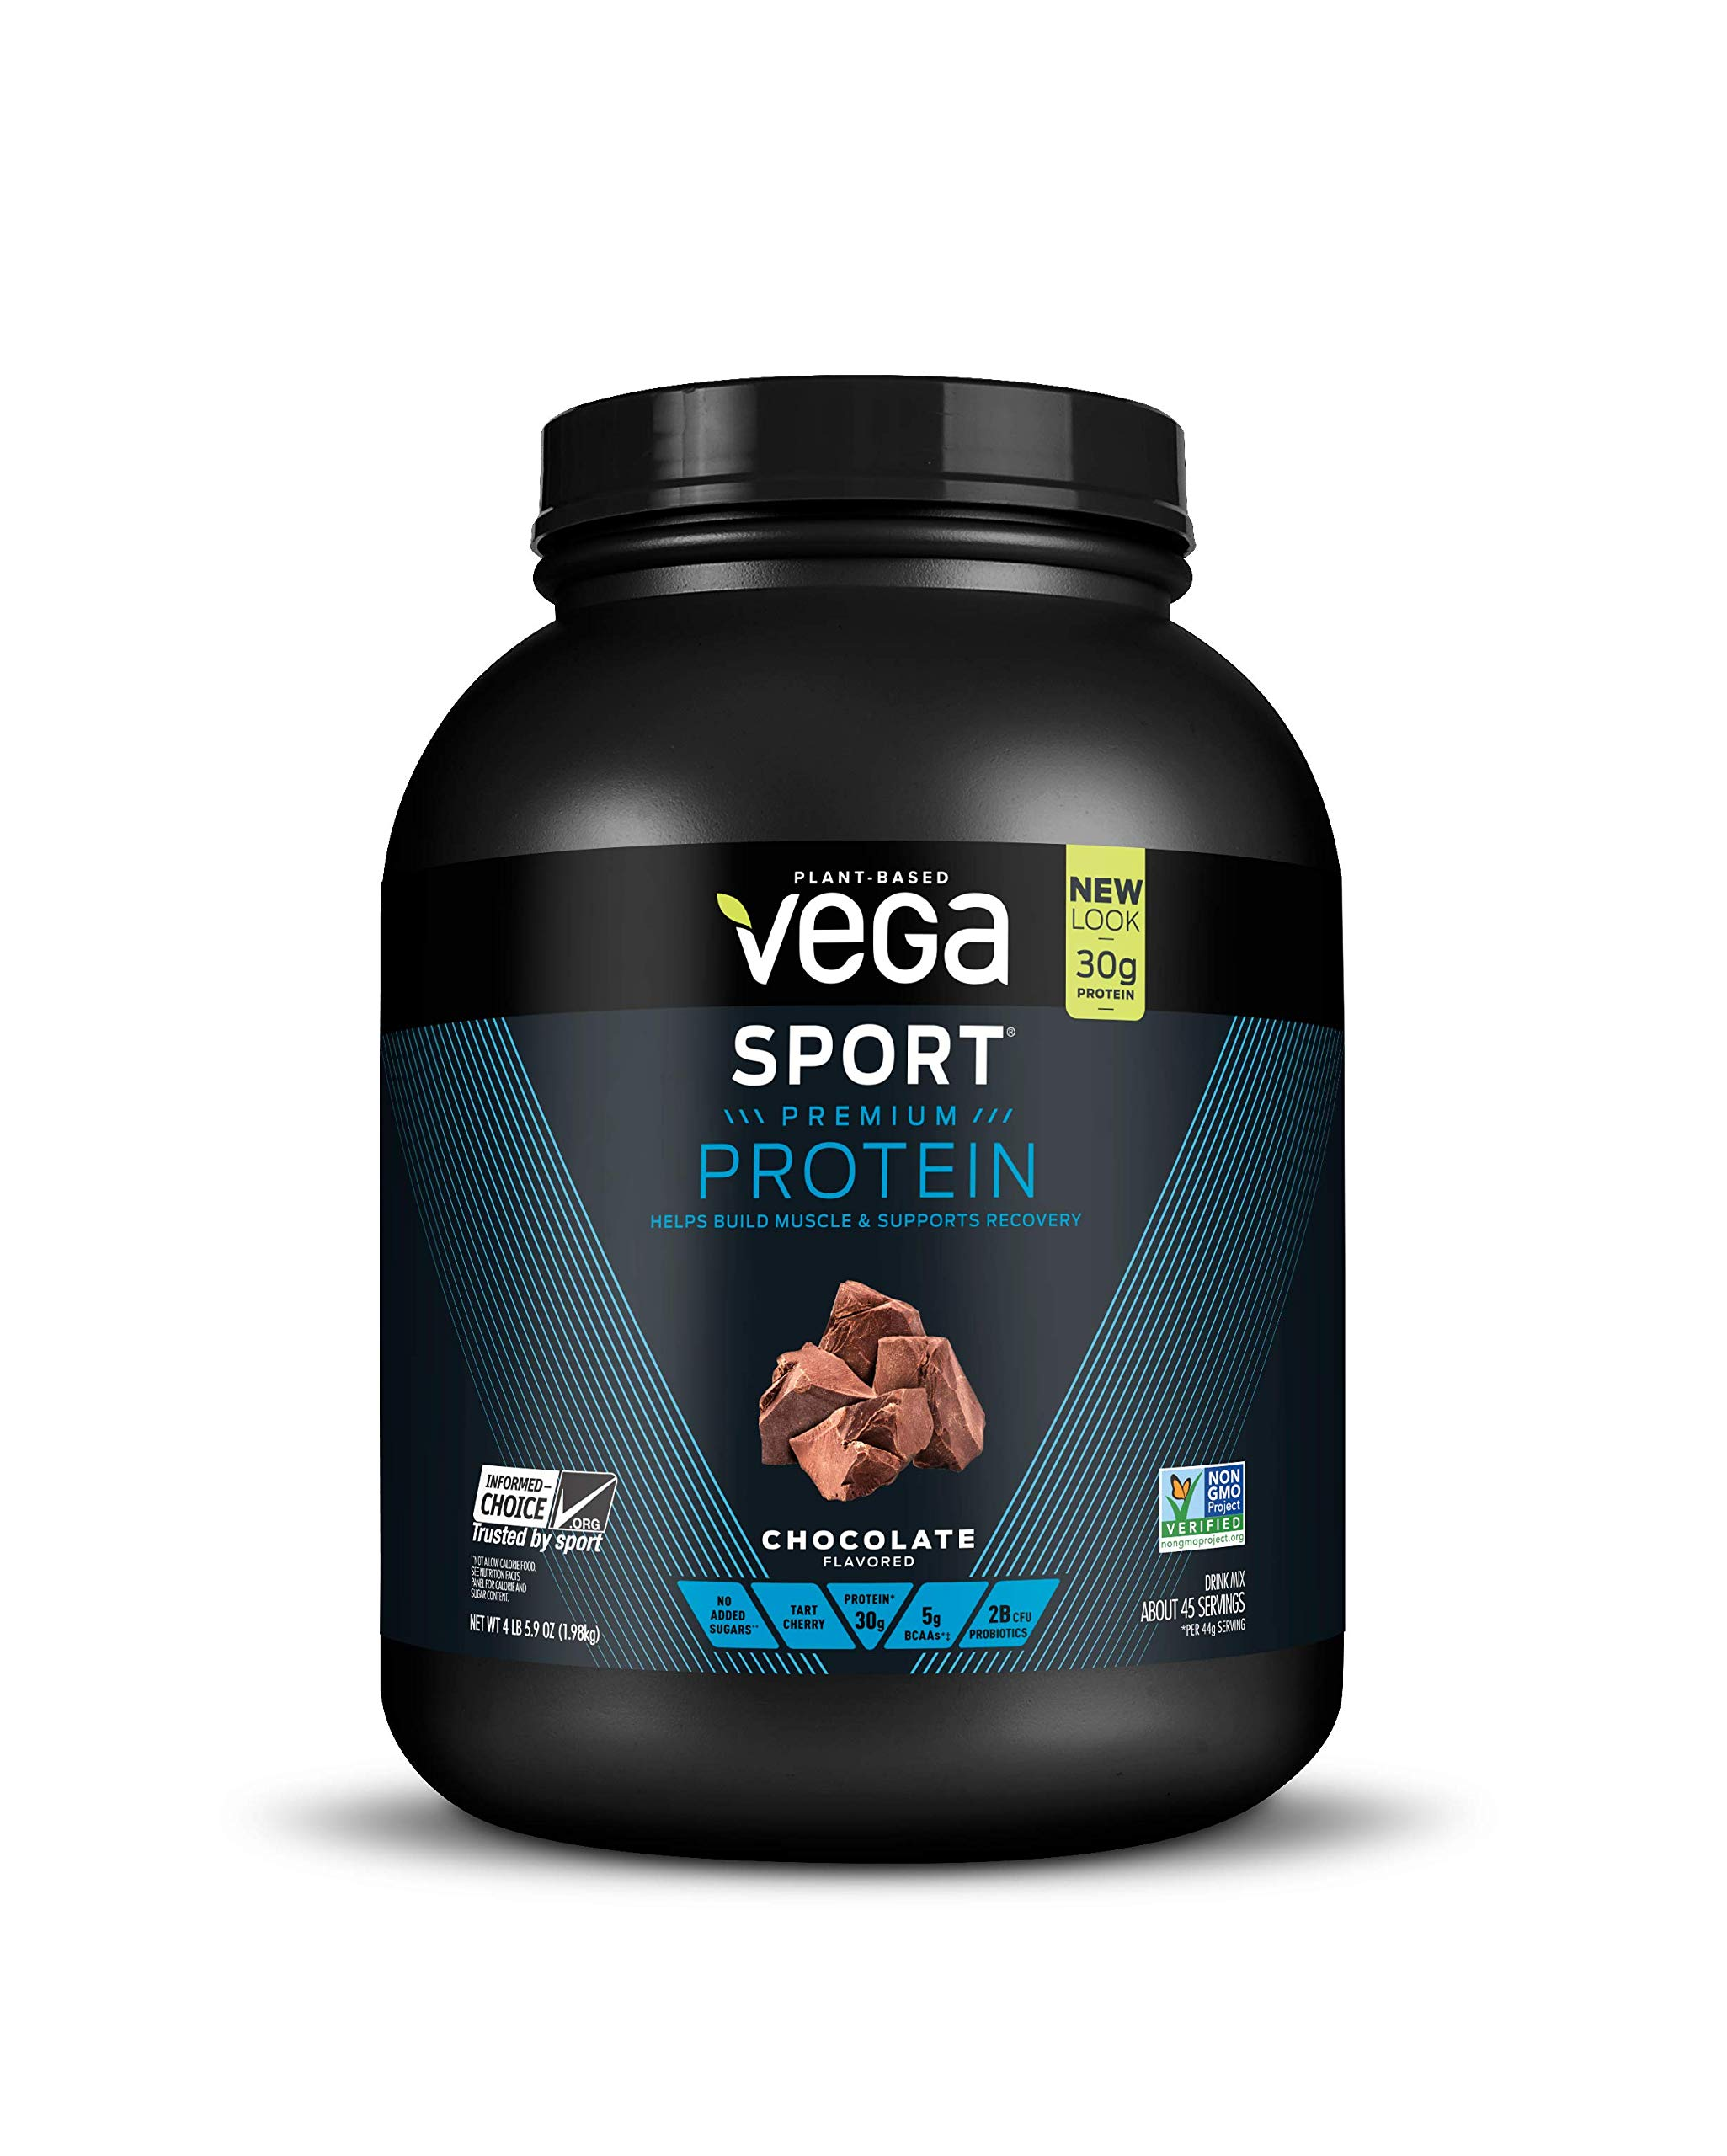 Vega Sport Protein Powder Chocolate (45 Servings, 4 lb 5.9oz) - Plant Based Vegan Protein Powder, BCAAs, Amino Acid, Tart Cherry, Non Dairy, Gluten Free, Non GMO (Packaging May Vary)